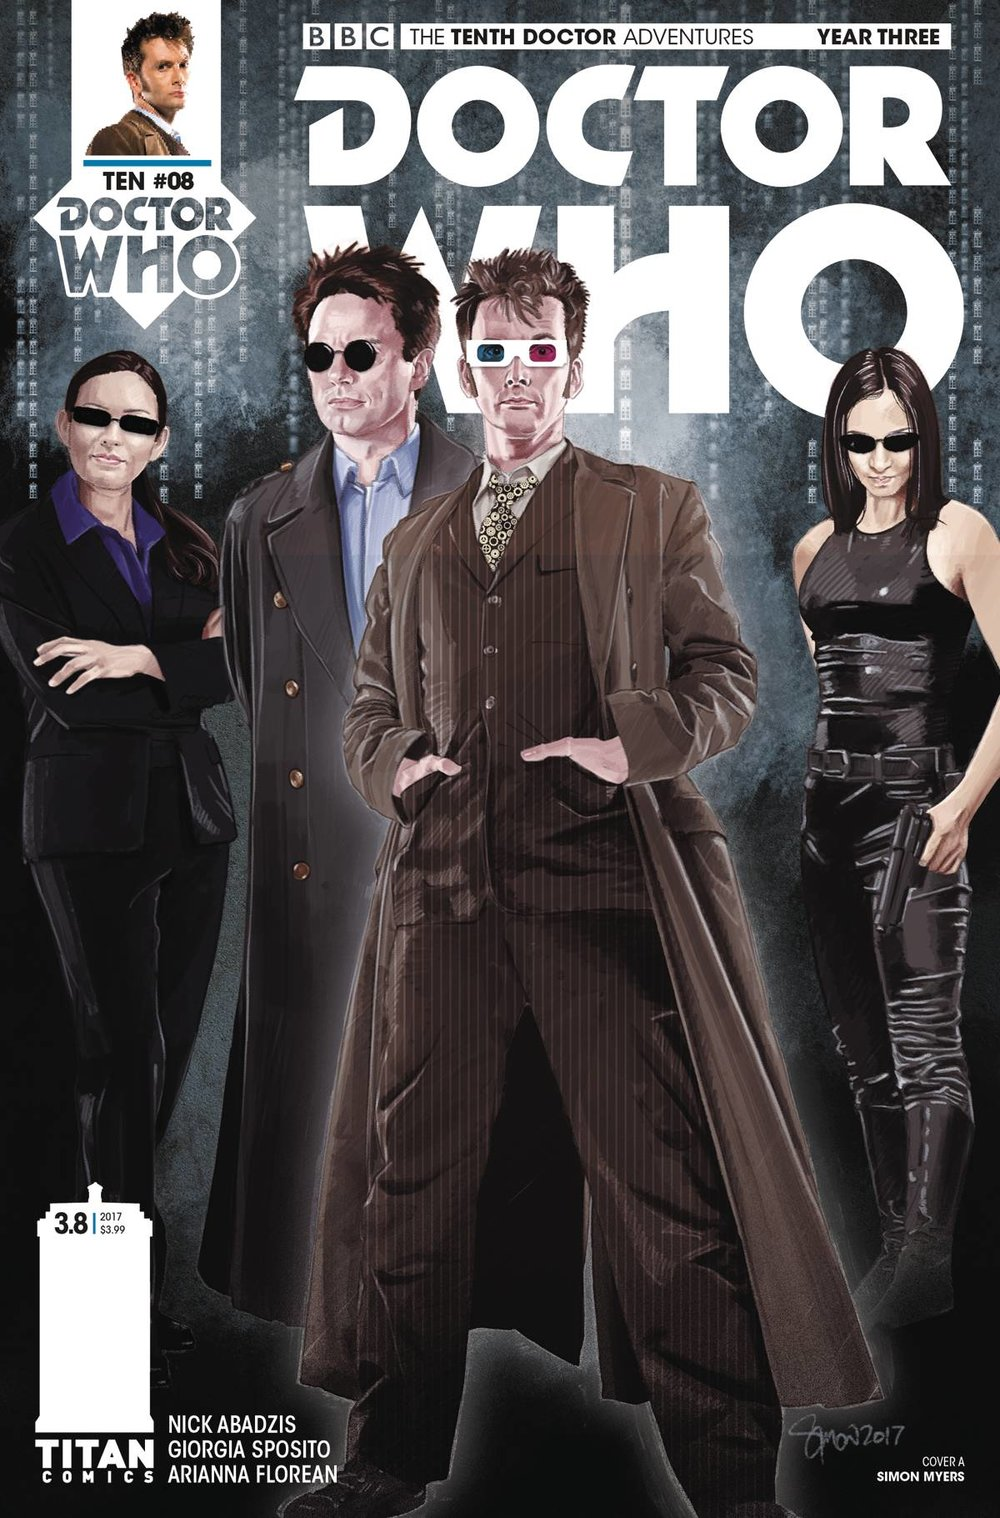 DOCTOR WHO 10TH YEAR THREE 8 CVR A MYERS.jpg